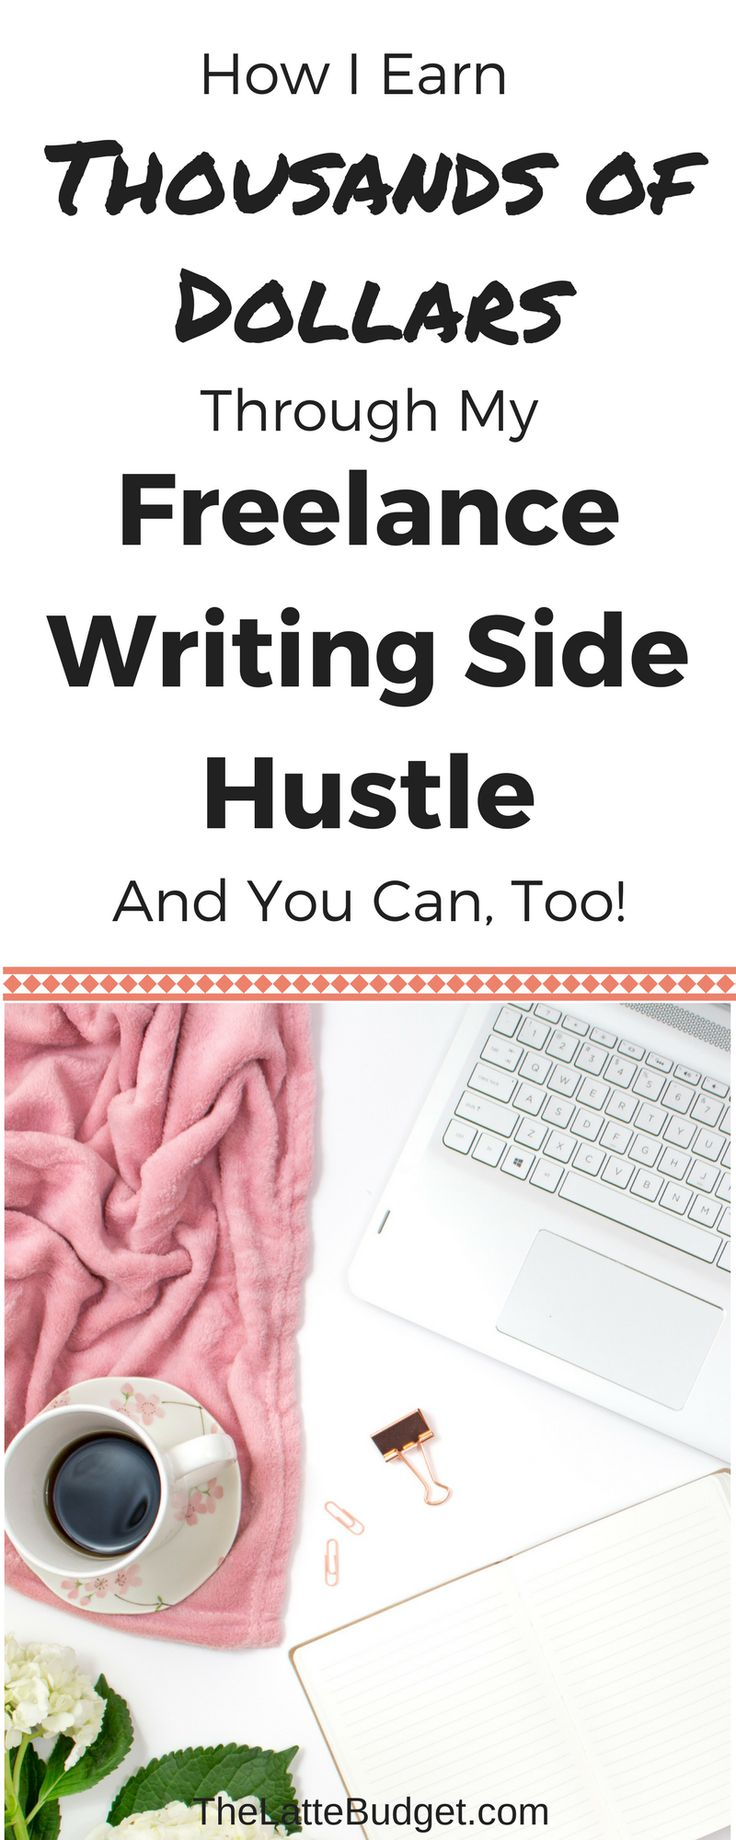 best lance writing ✏ images   lance writing money side hustles earn money through lance writing how to start lance writing make money online work from home jobs